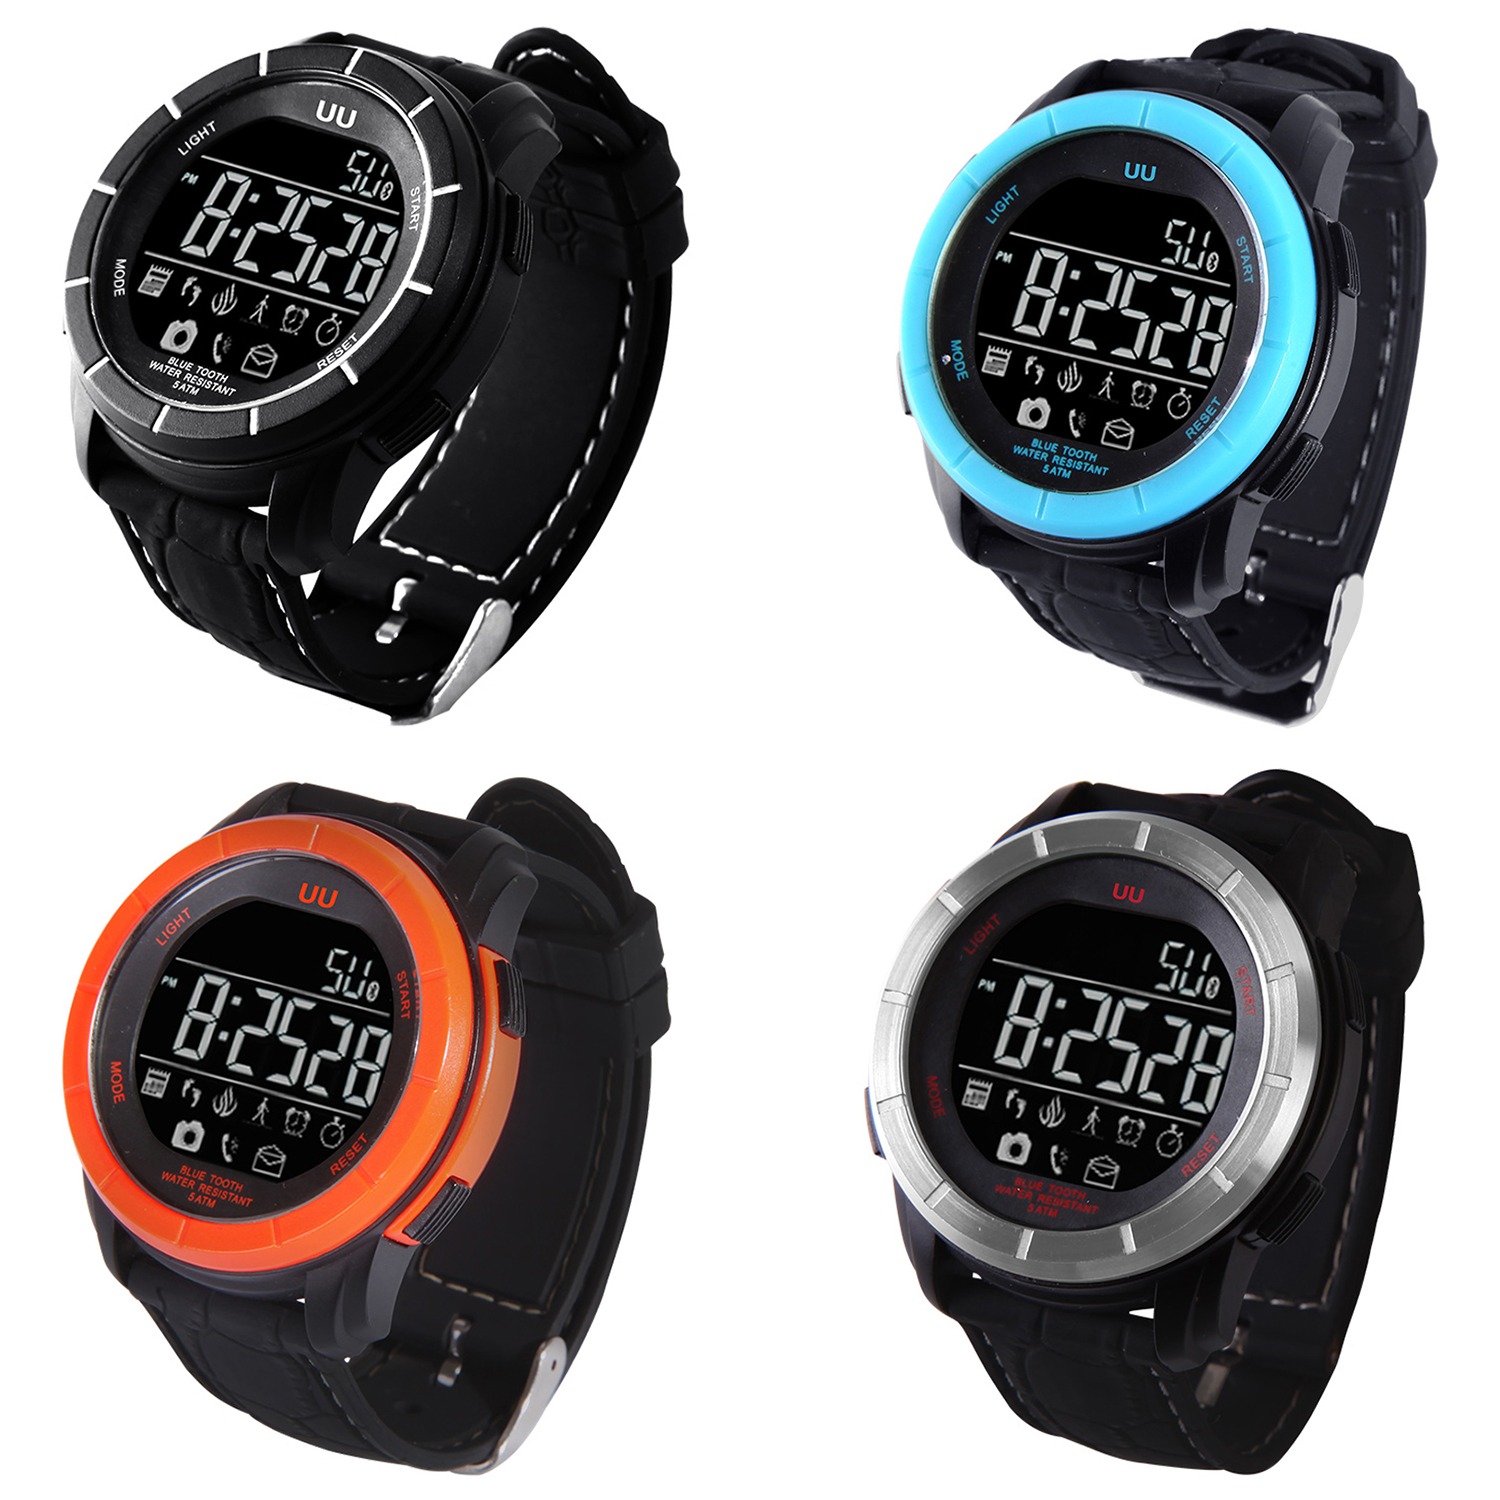 Uu-bluetooth-smart-watch-wasserdichten-outdoor-sportuhr-fuer-ios-android-sm-Z6I9